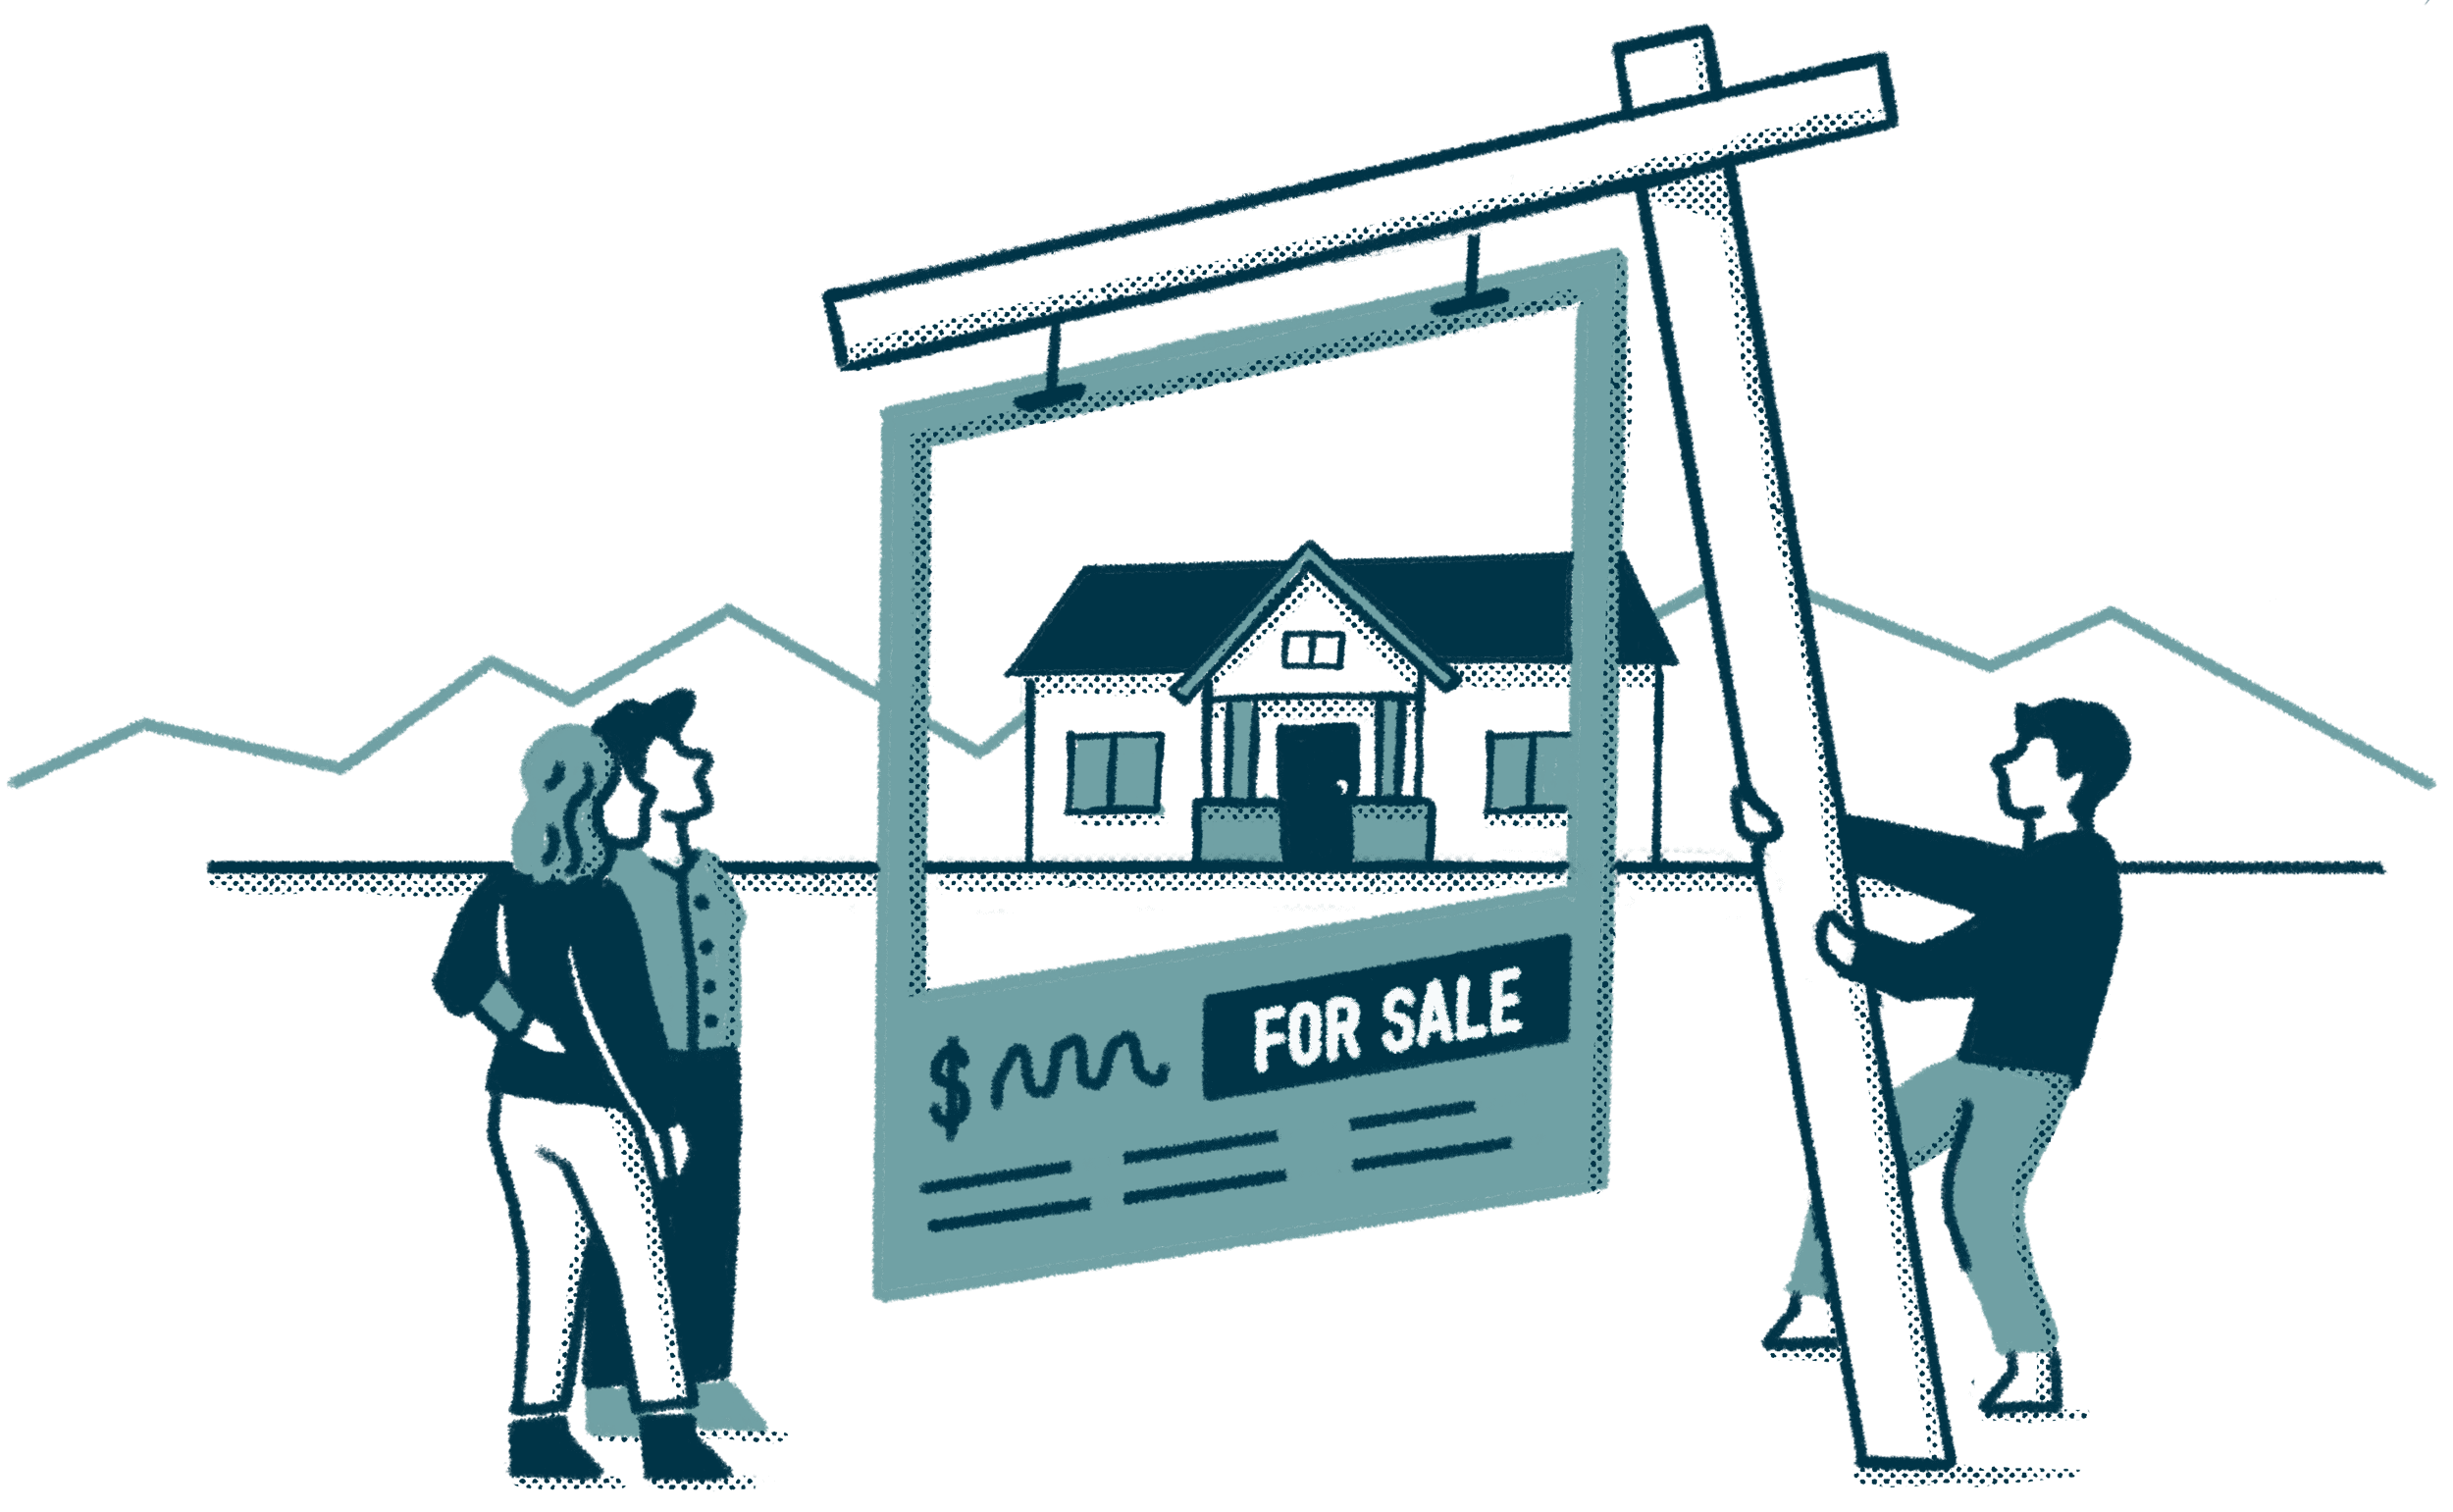 a realtor pulling up a giant real estate sign with listing information and a window that allows you to see the actual home and the mountains in the background. a couple looks on.